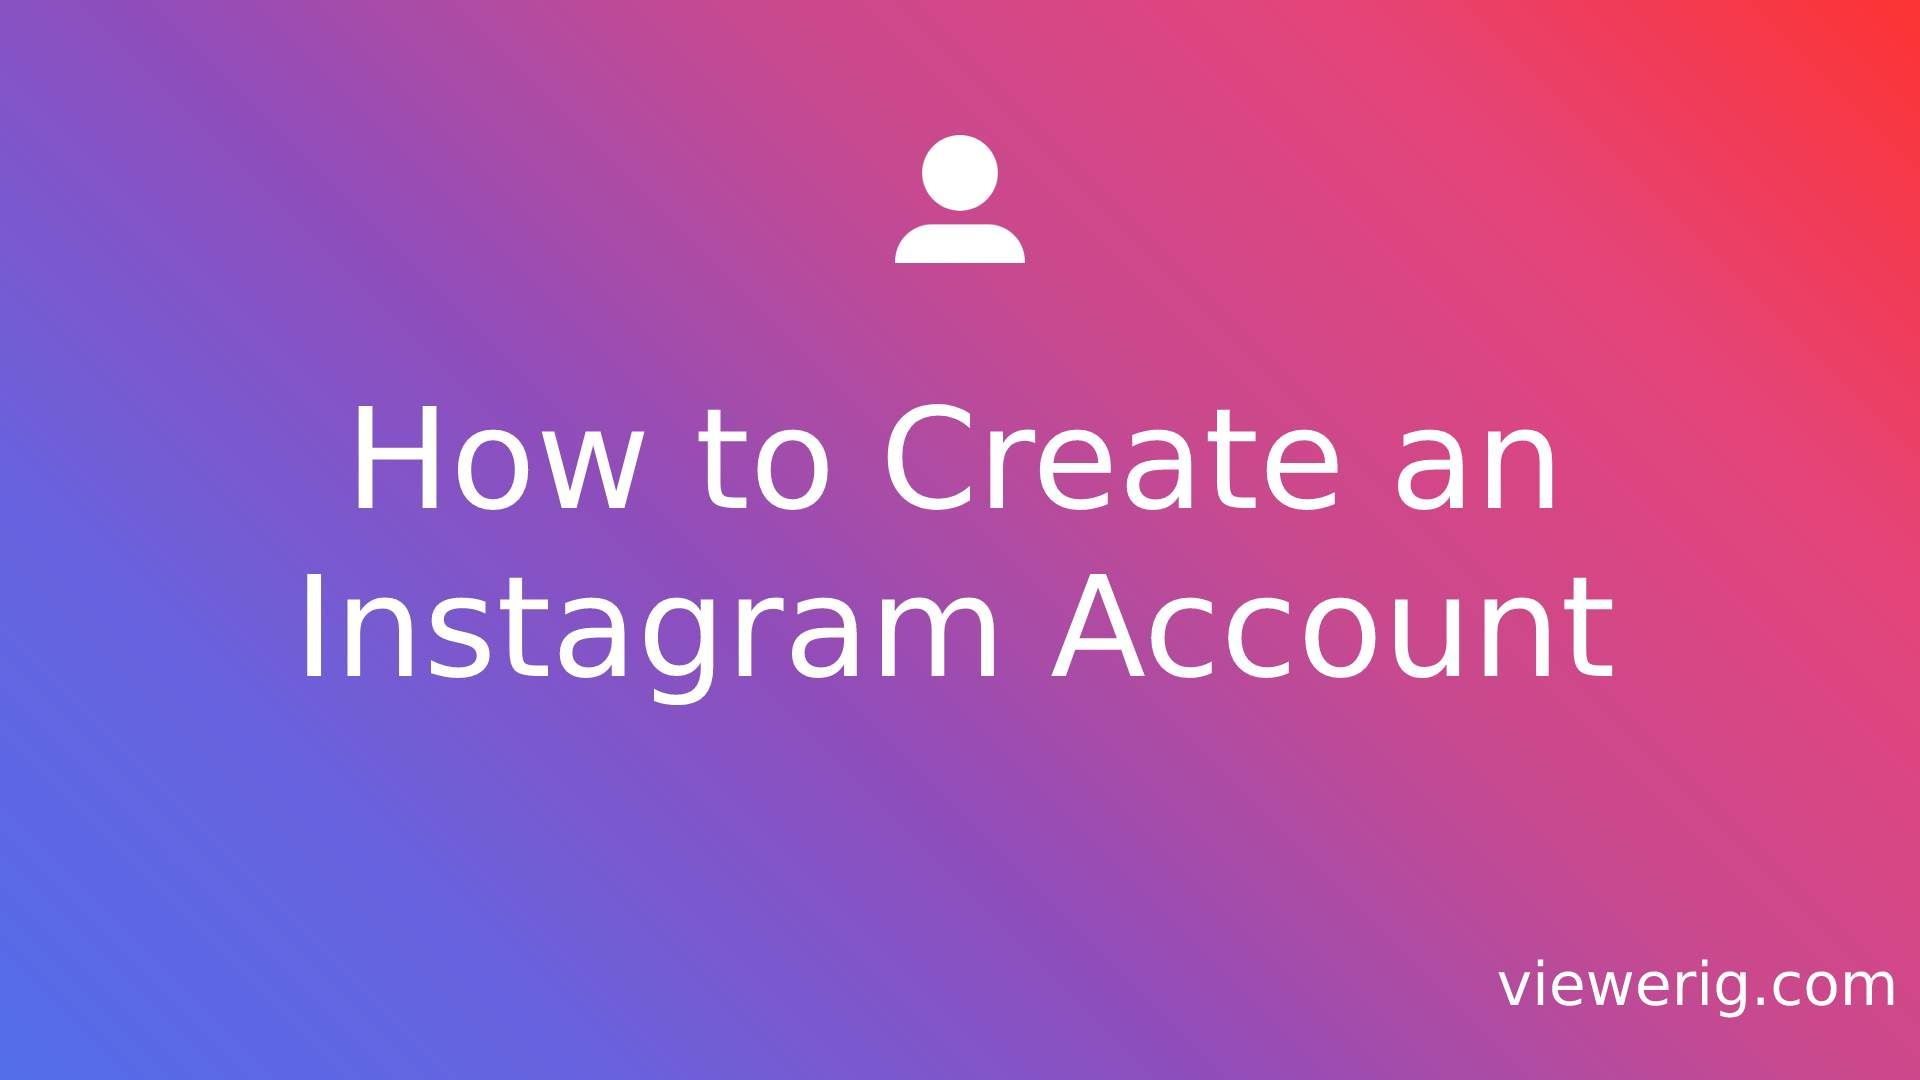 How to Create an Instagram Account? Register to Instagram